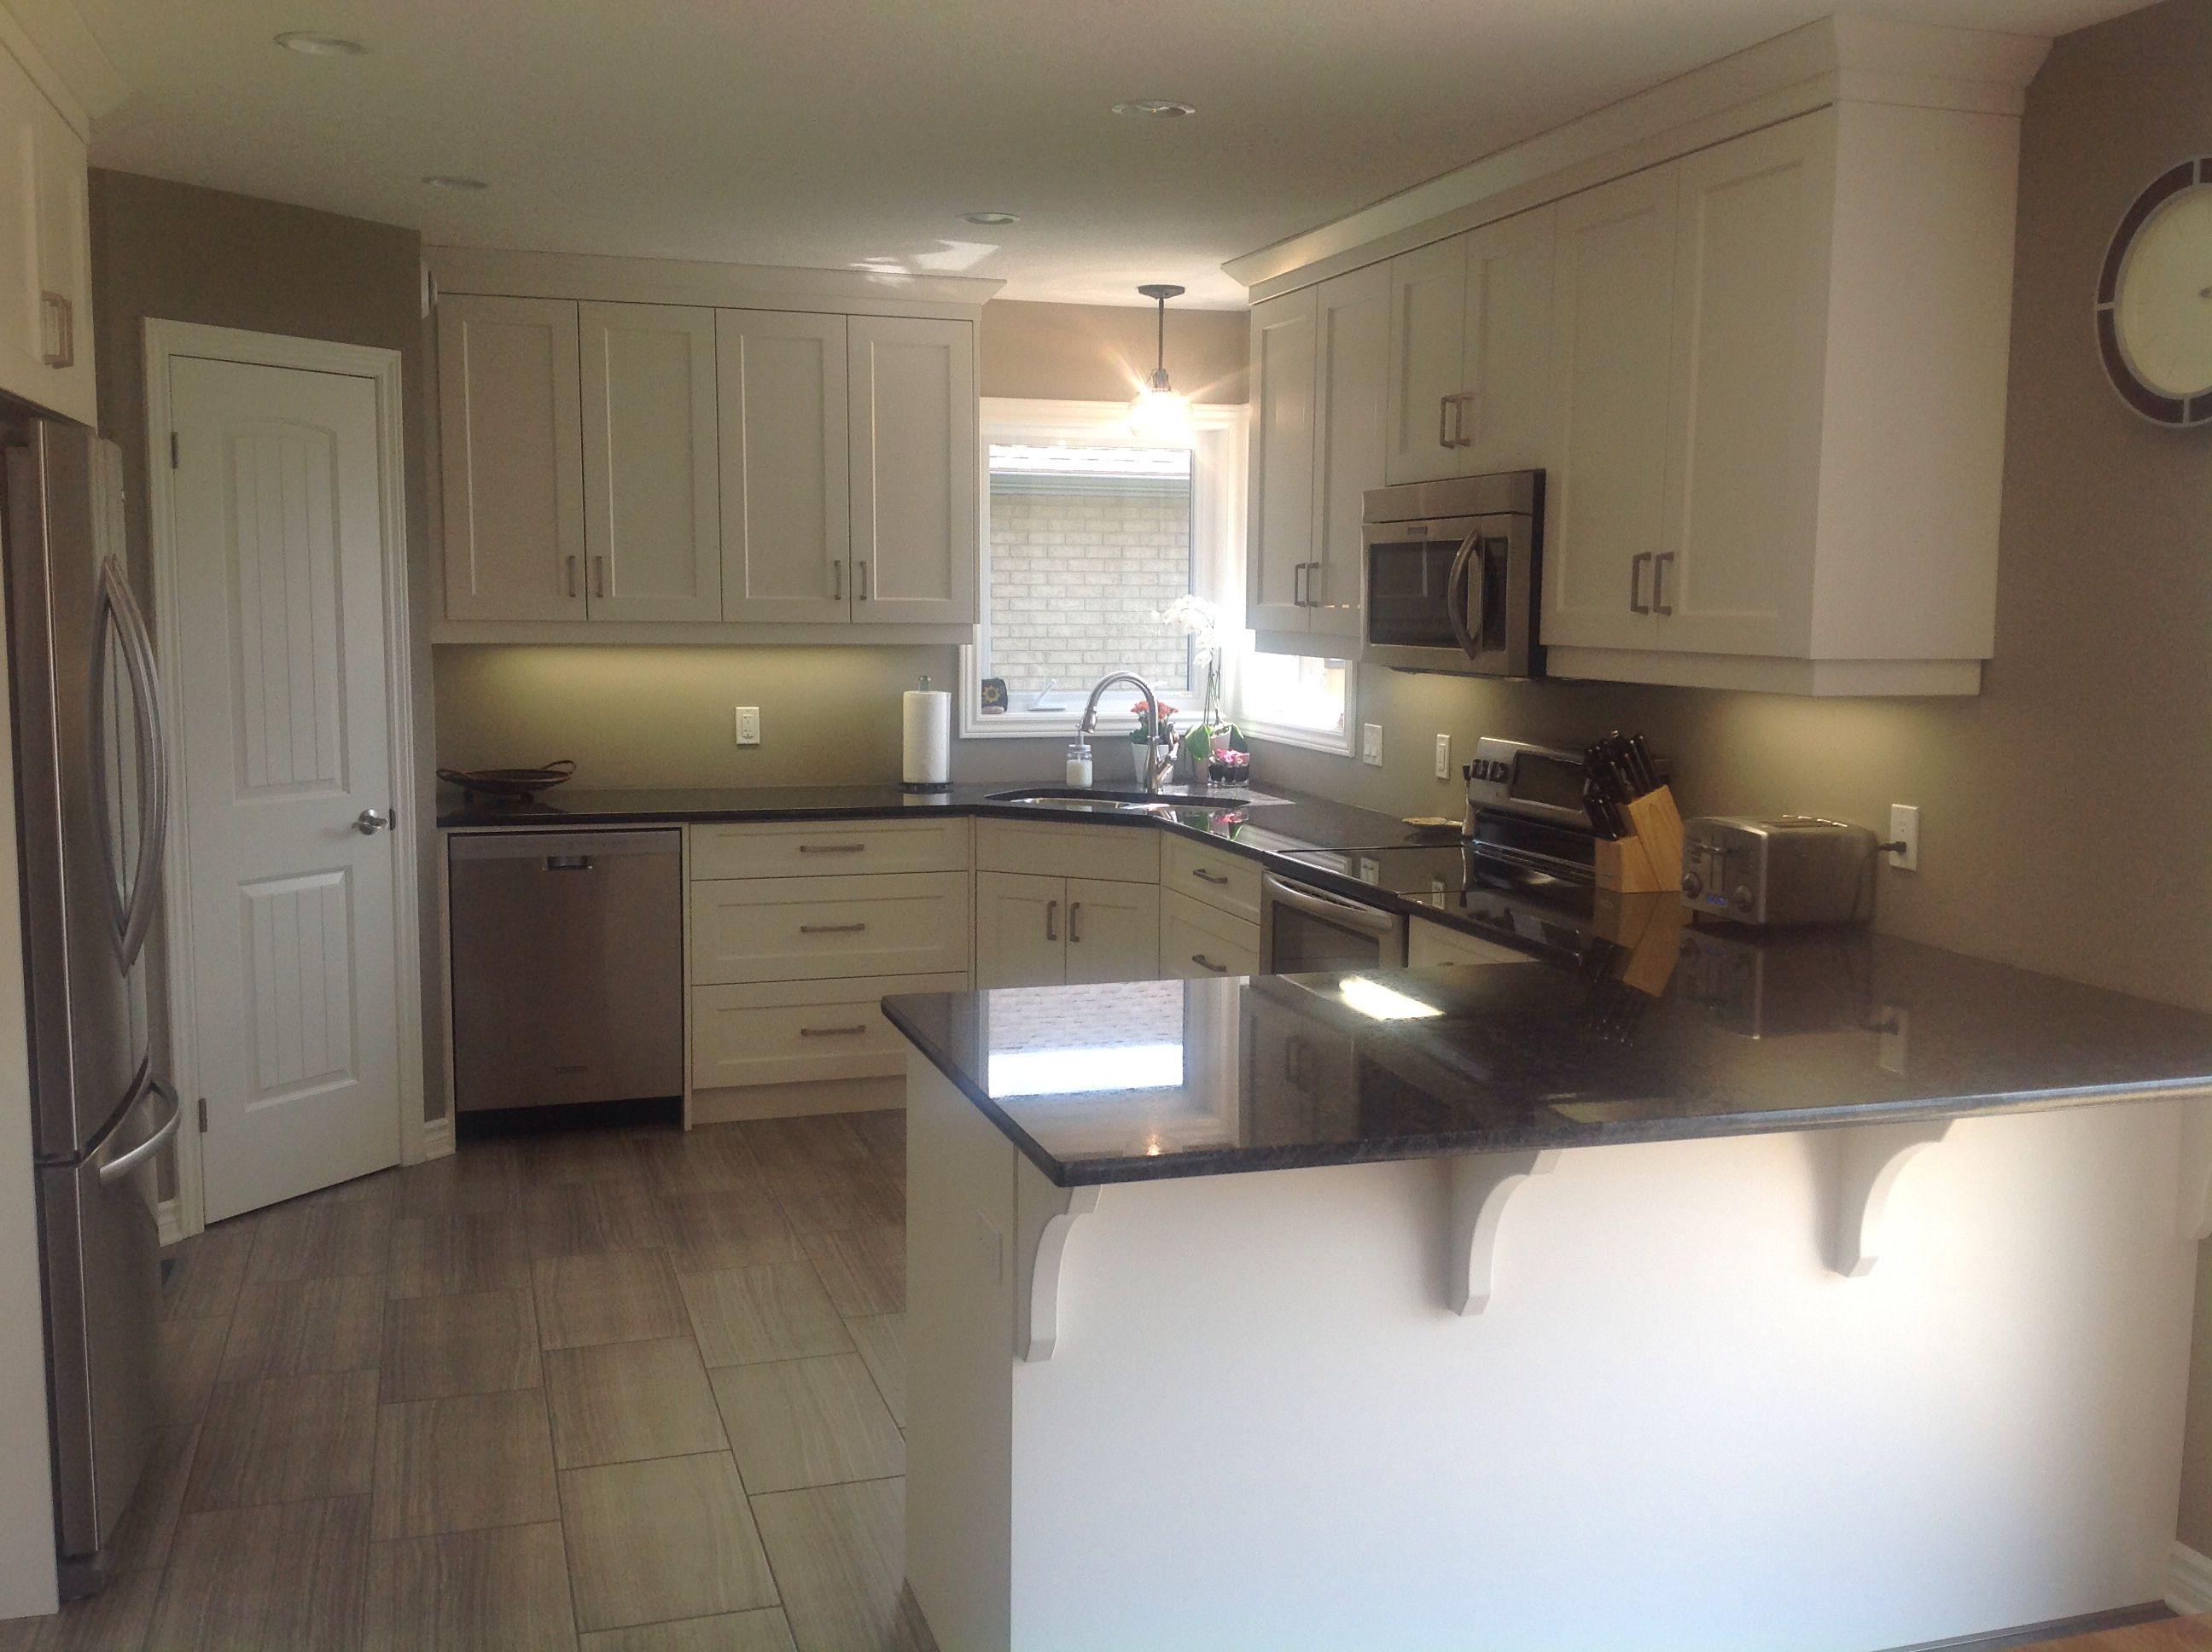 Cloud White Benjamin Moore Cabinets Black Pearl Granite Ranchwood Paint Color Beautiful